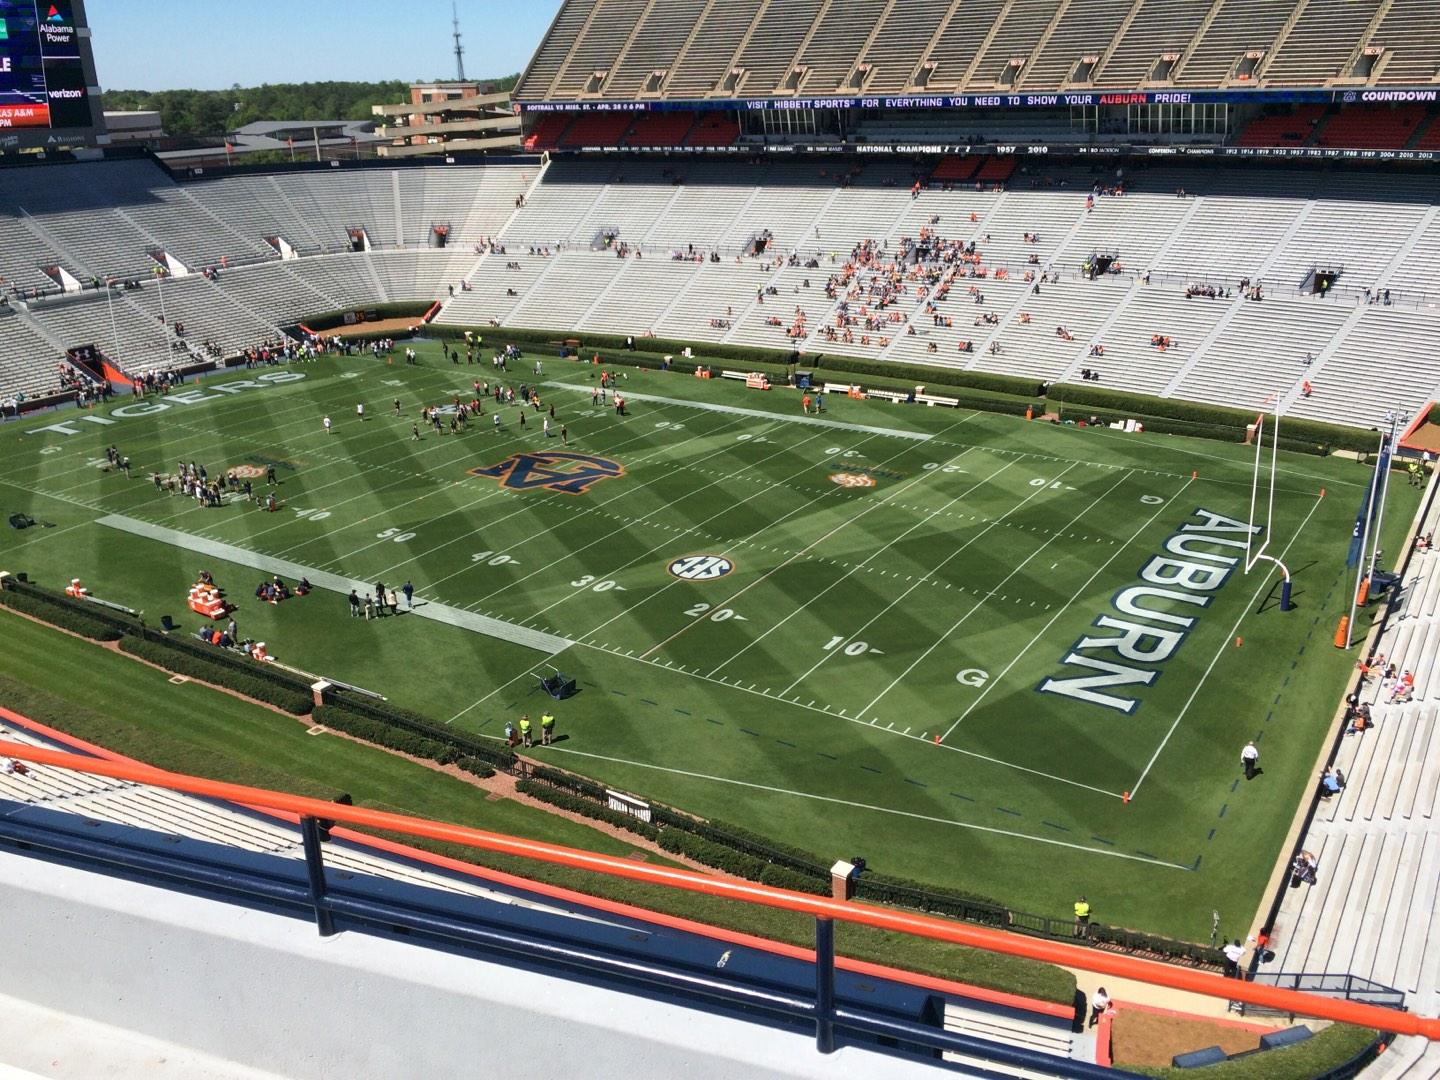 Jordan-Hare Stadium Section 113 Row 5 Seat 7